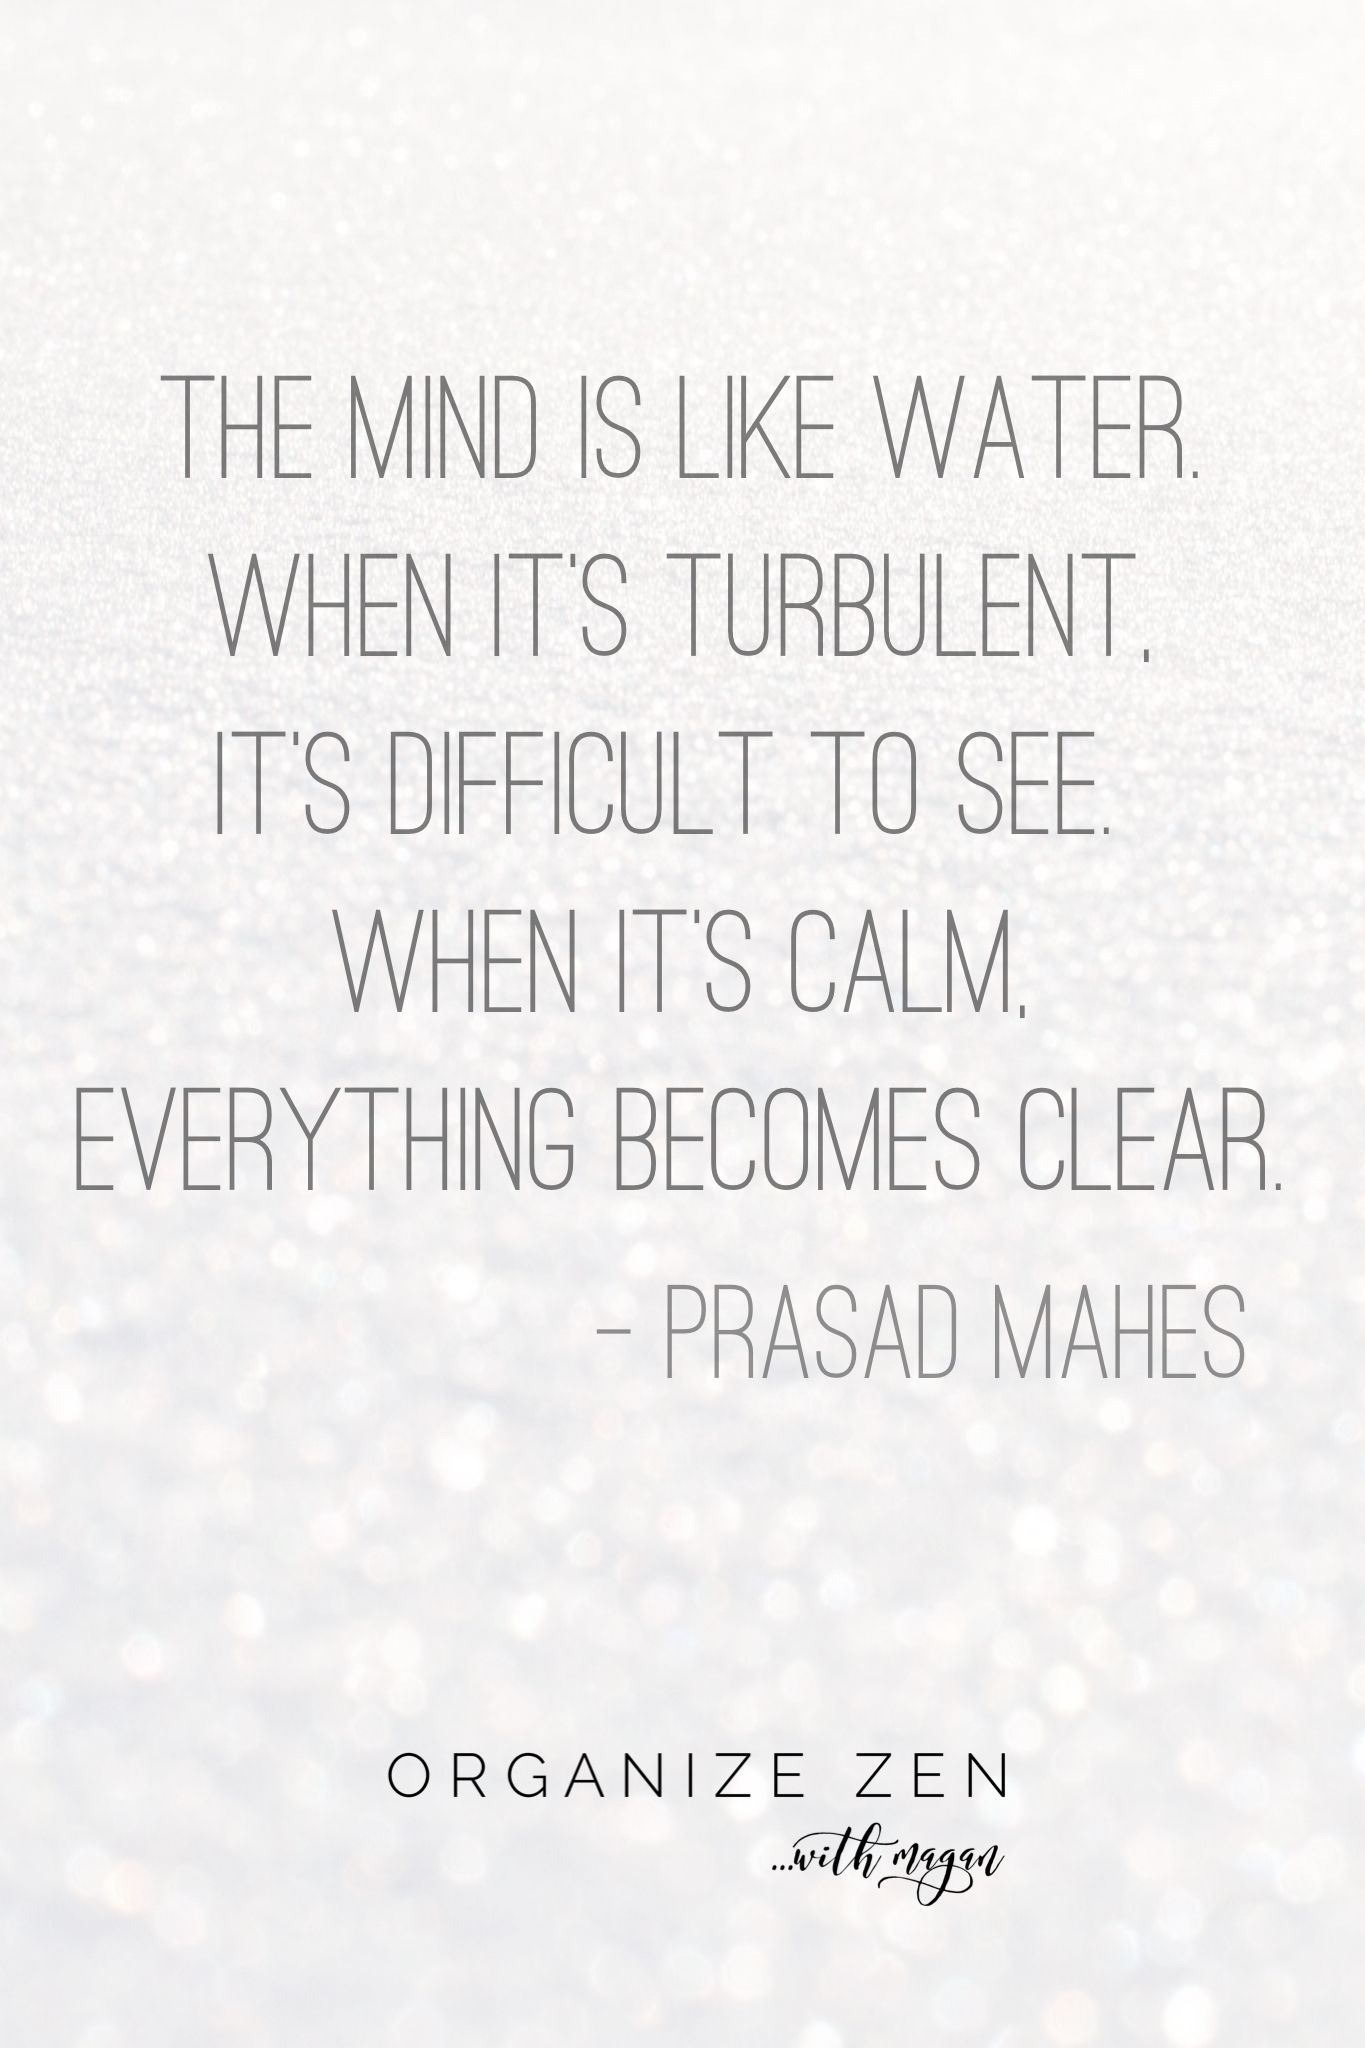 Love These Words Of Wisdom About Being More Mindful And Present